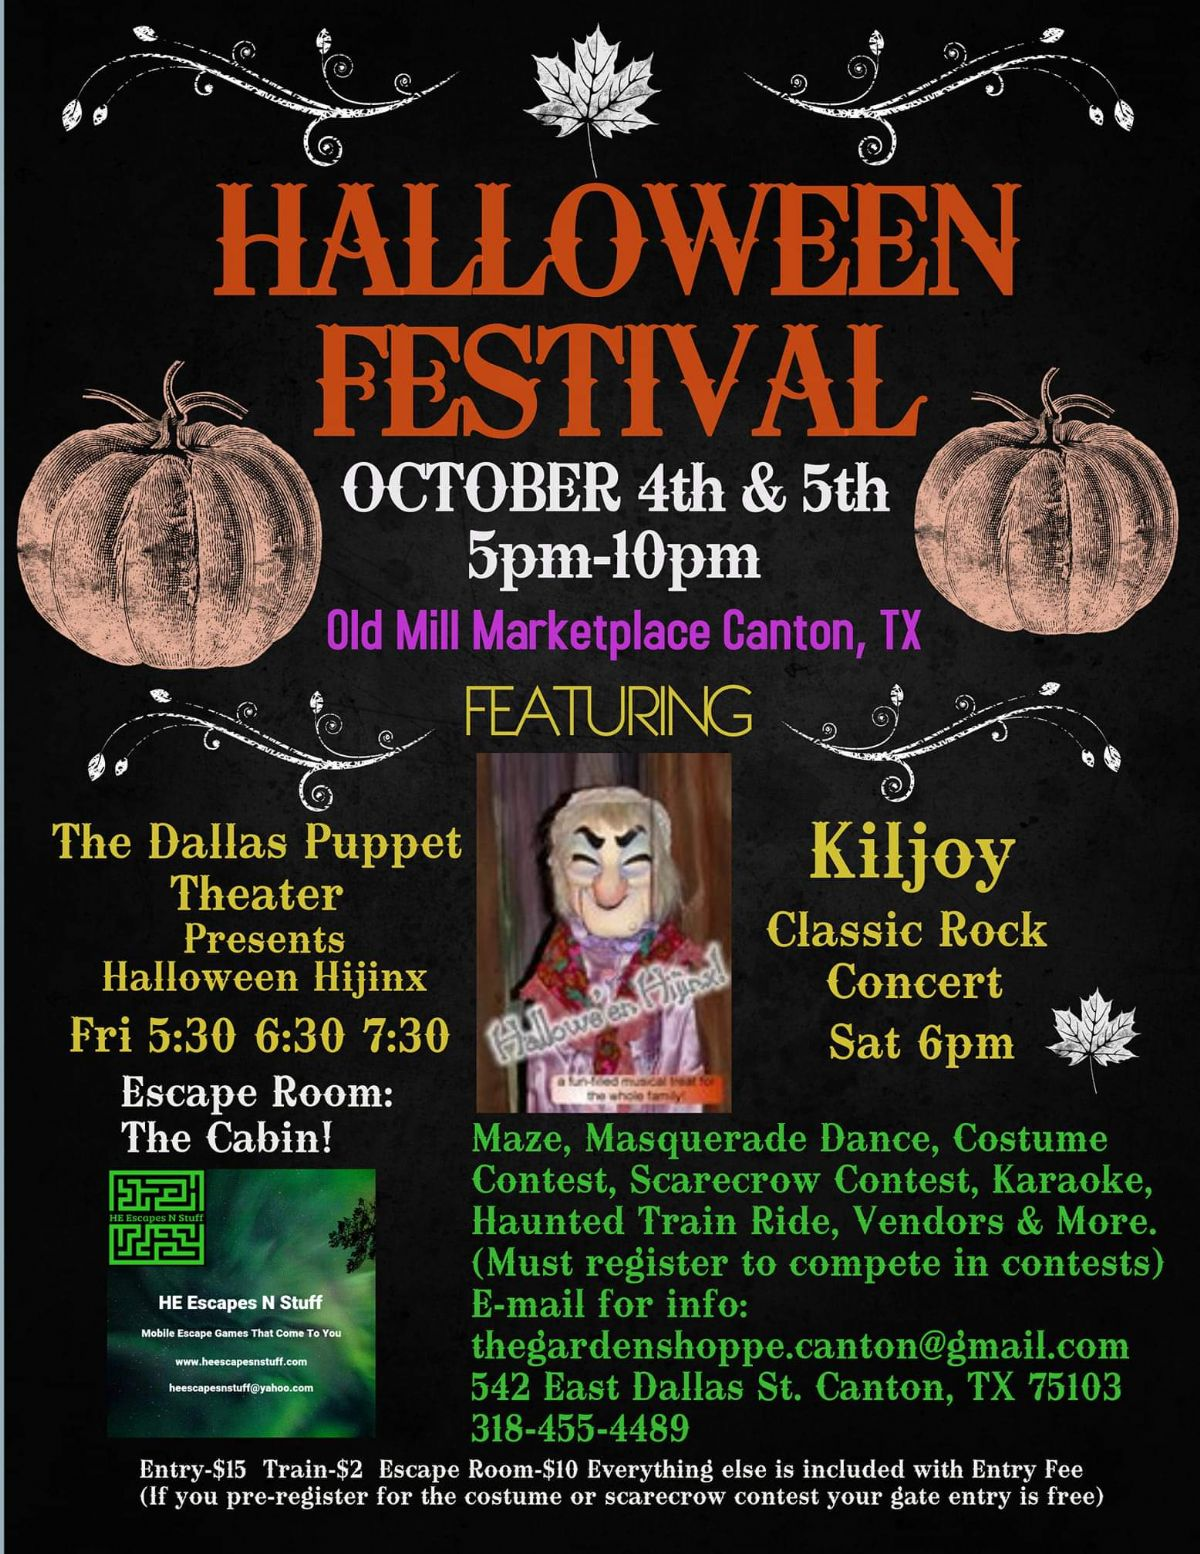 Old Mill Marketplace Halloween Festival